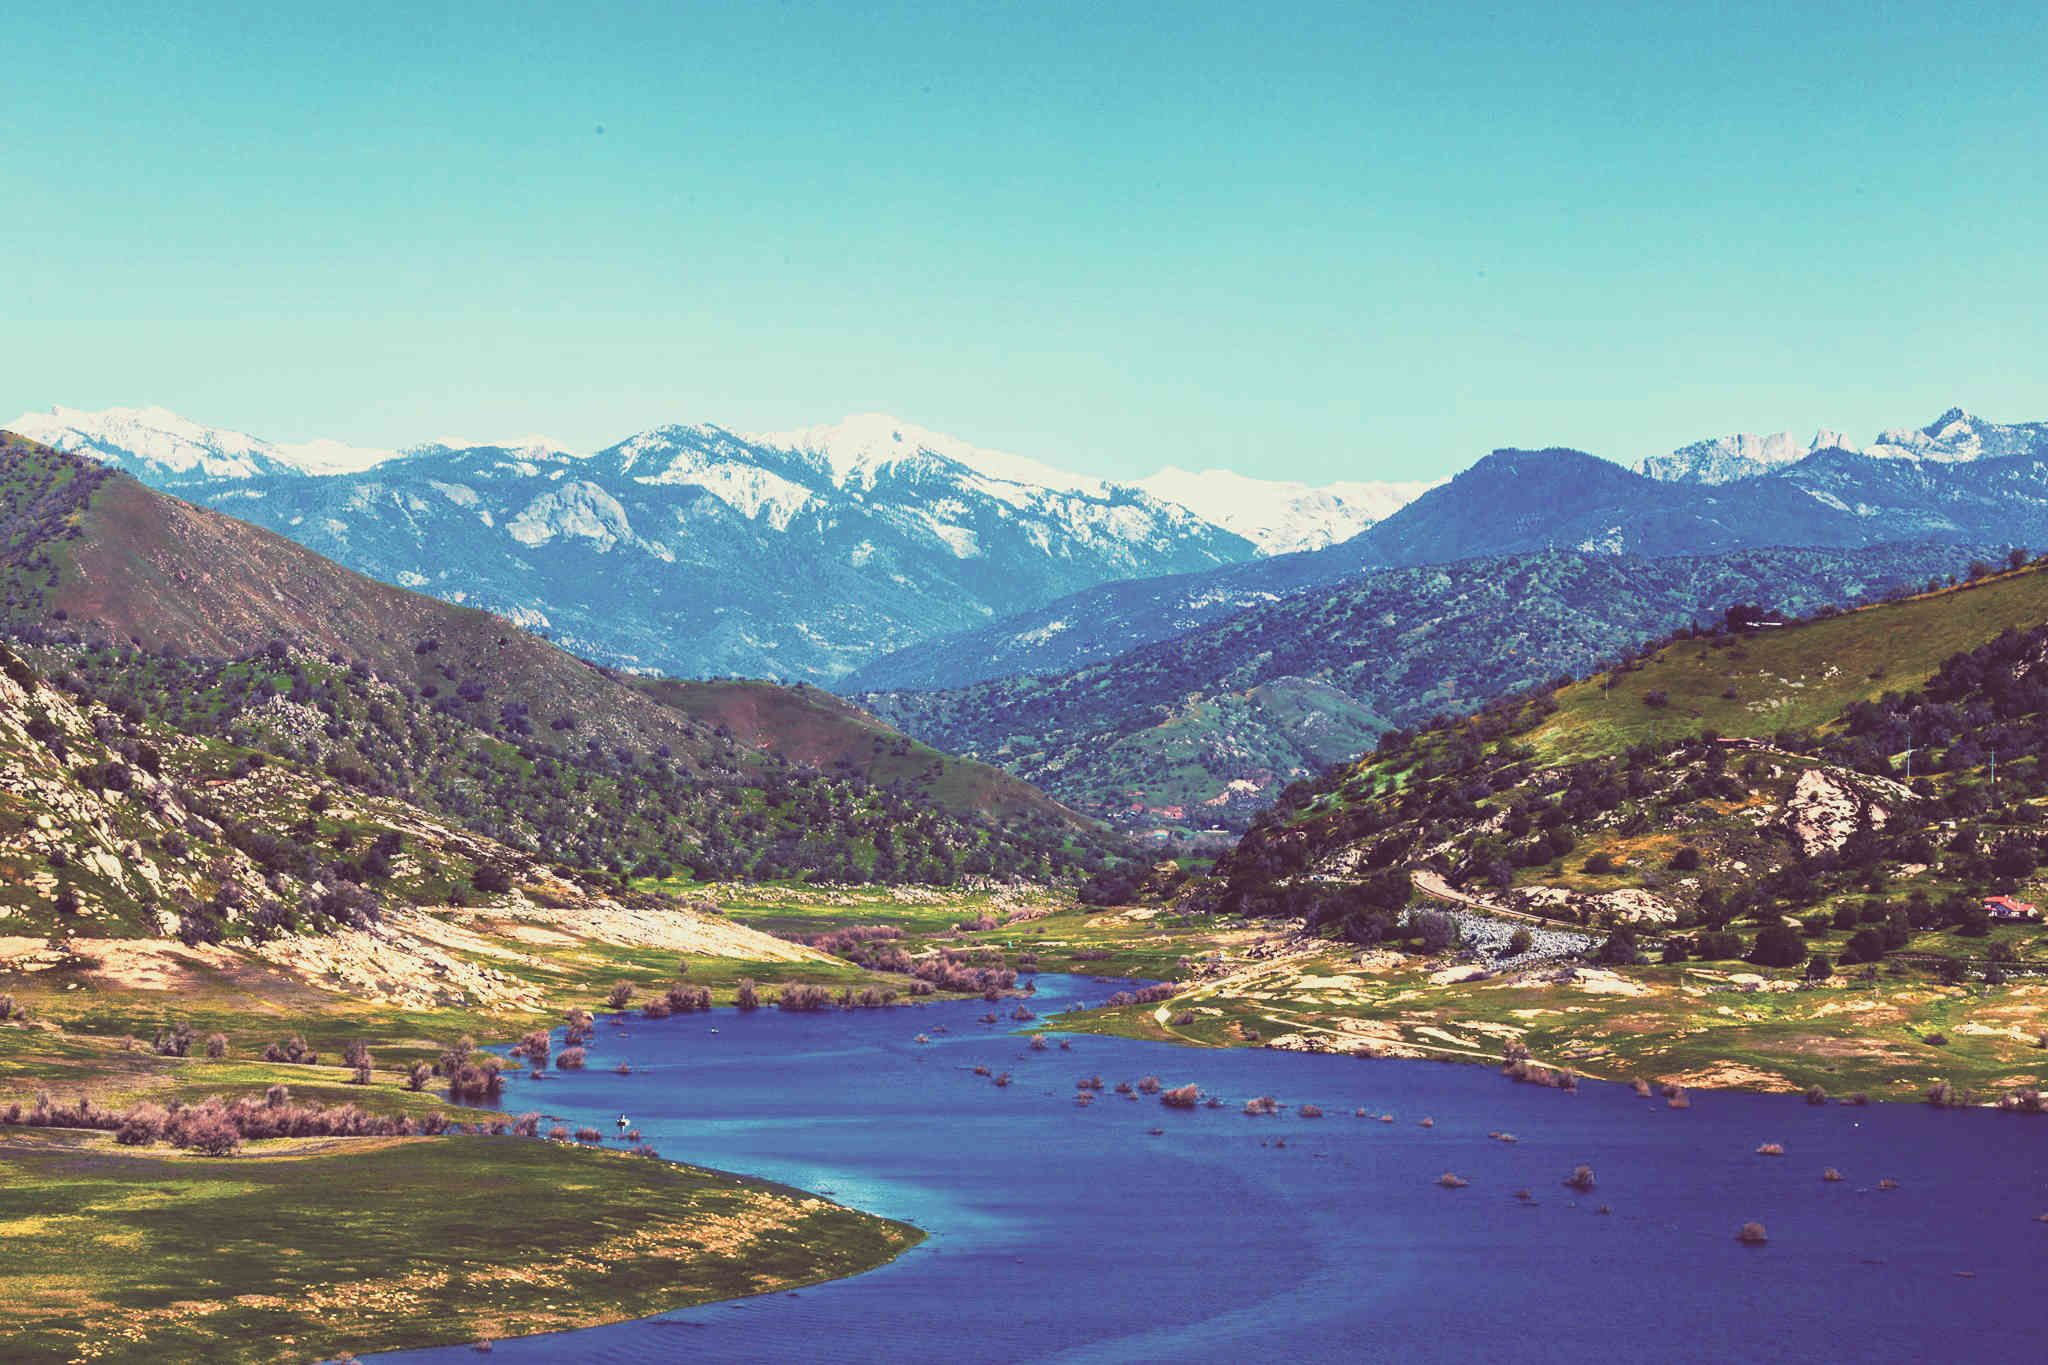 Long view of Kaweah Country - lake in foreground, hills mid-ground, Hig Sierra in the background.